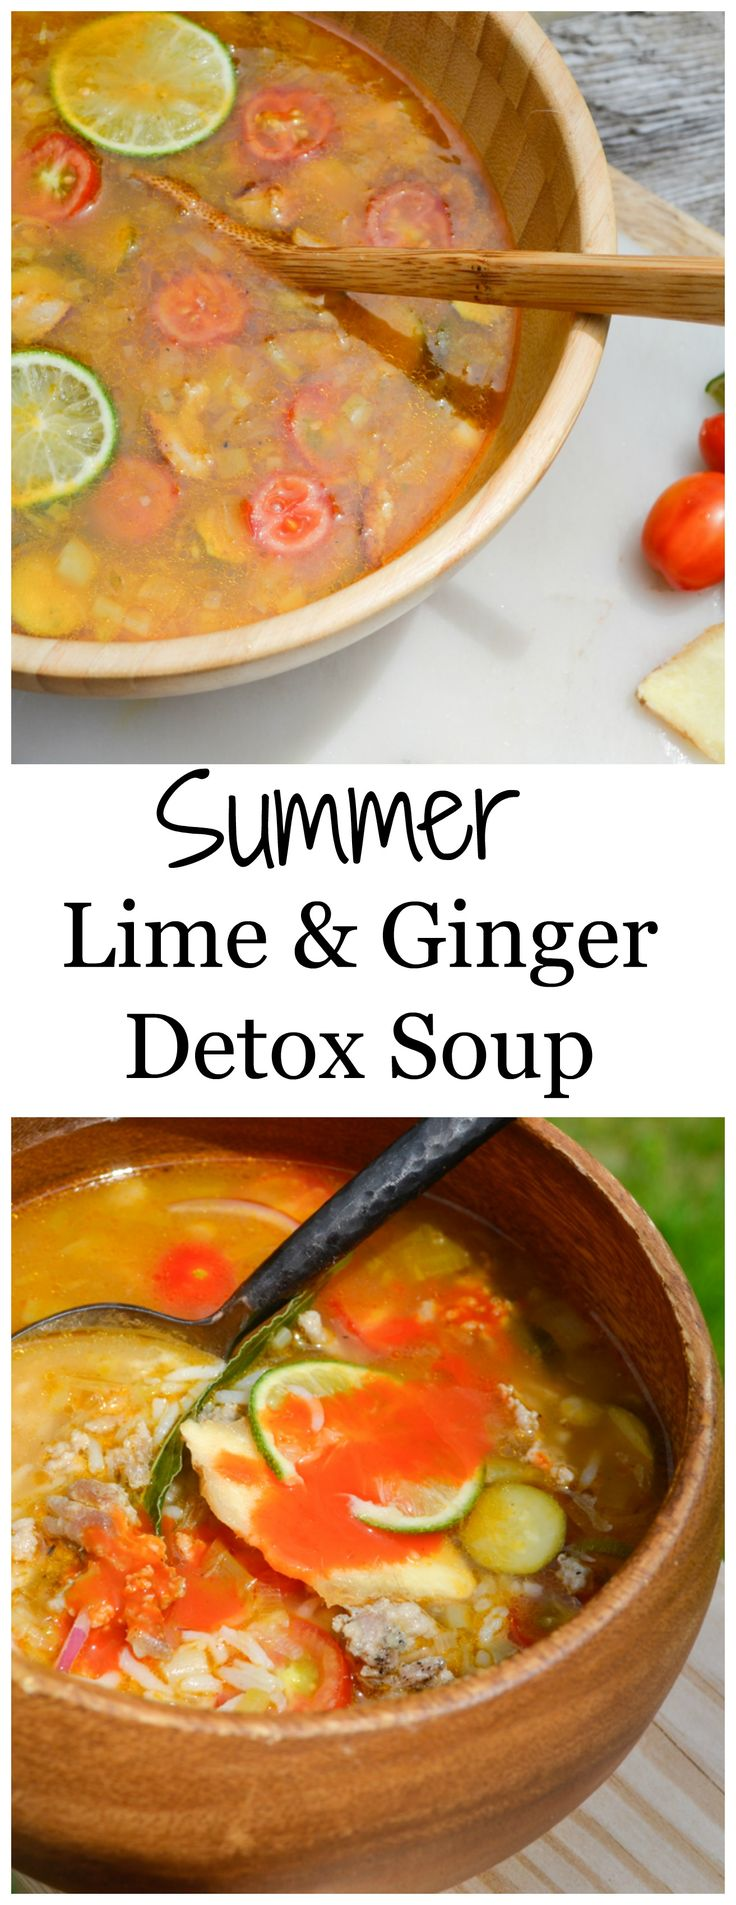 chicken detox soup best ever chicken detox soup recipe cleanse ...